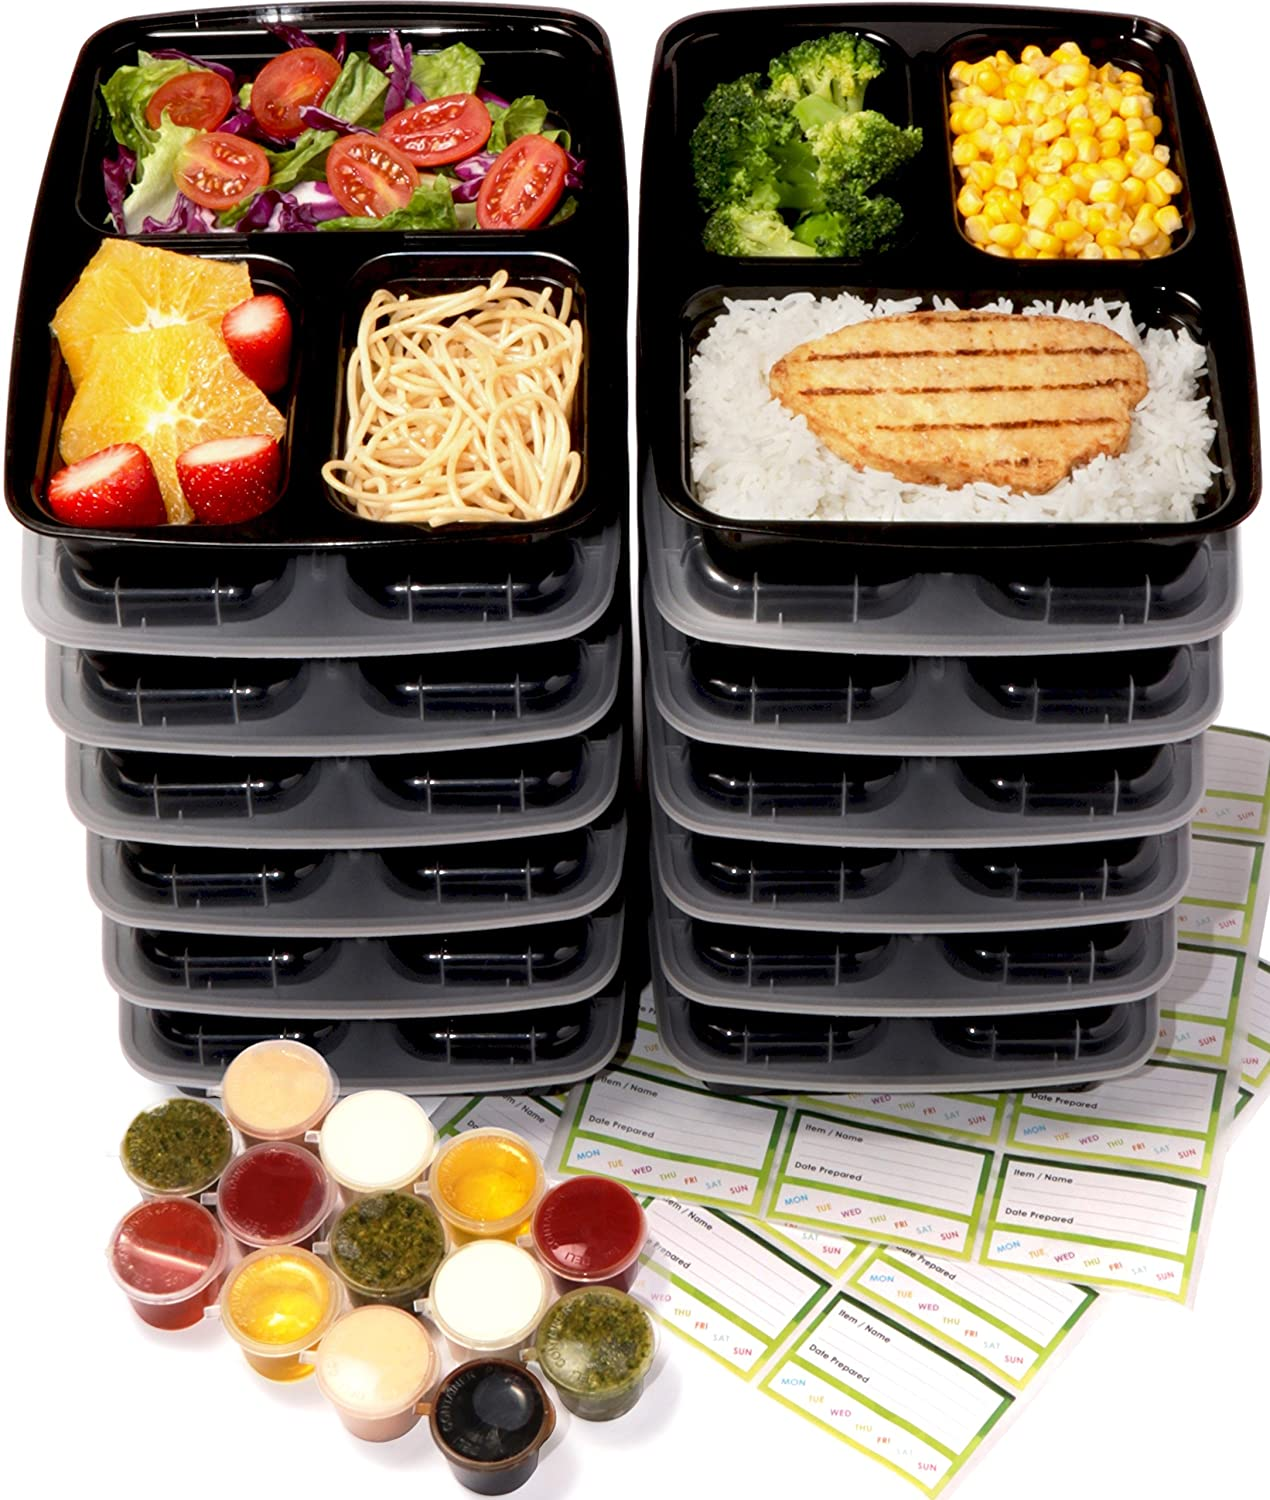 Chef Fresh Packs Meal Prep Container 16-Pack | Black Food Containers Meal Prepping 950ml Reusable, Dishwasher, Freezer & Microwave Safe Take Away Food Boxes